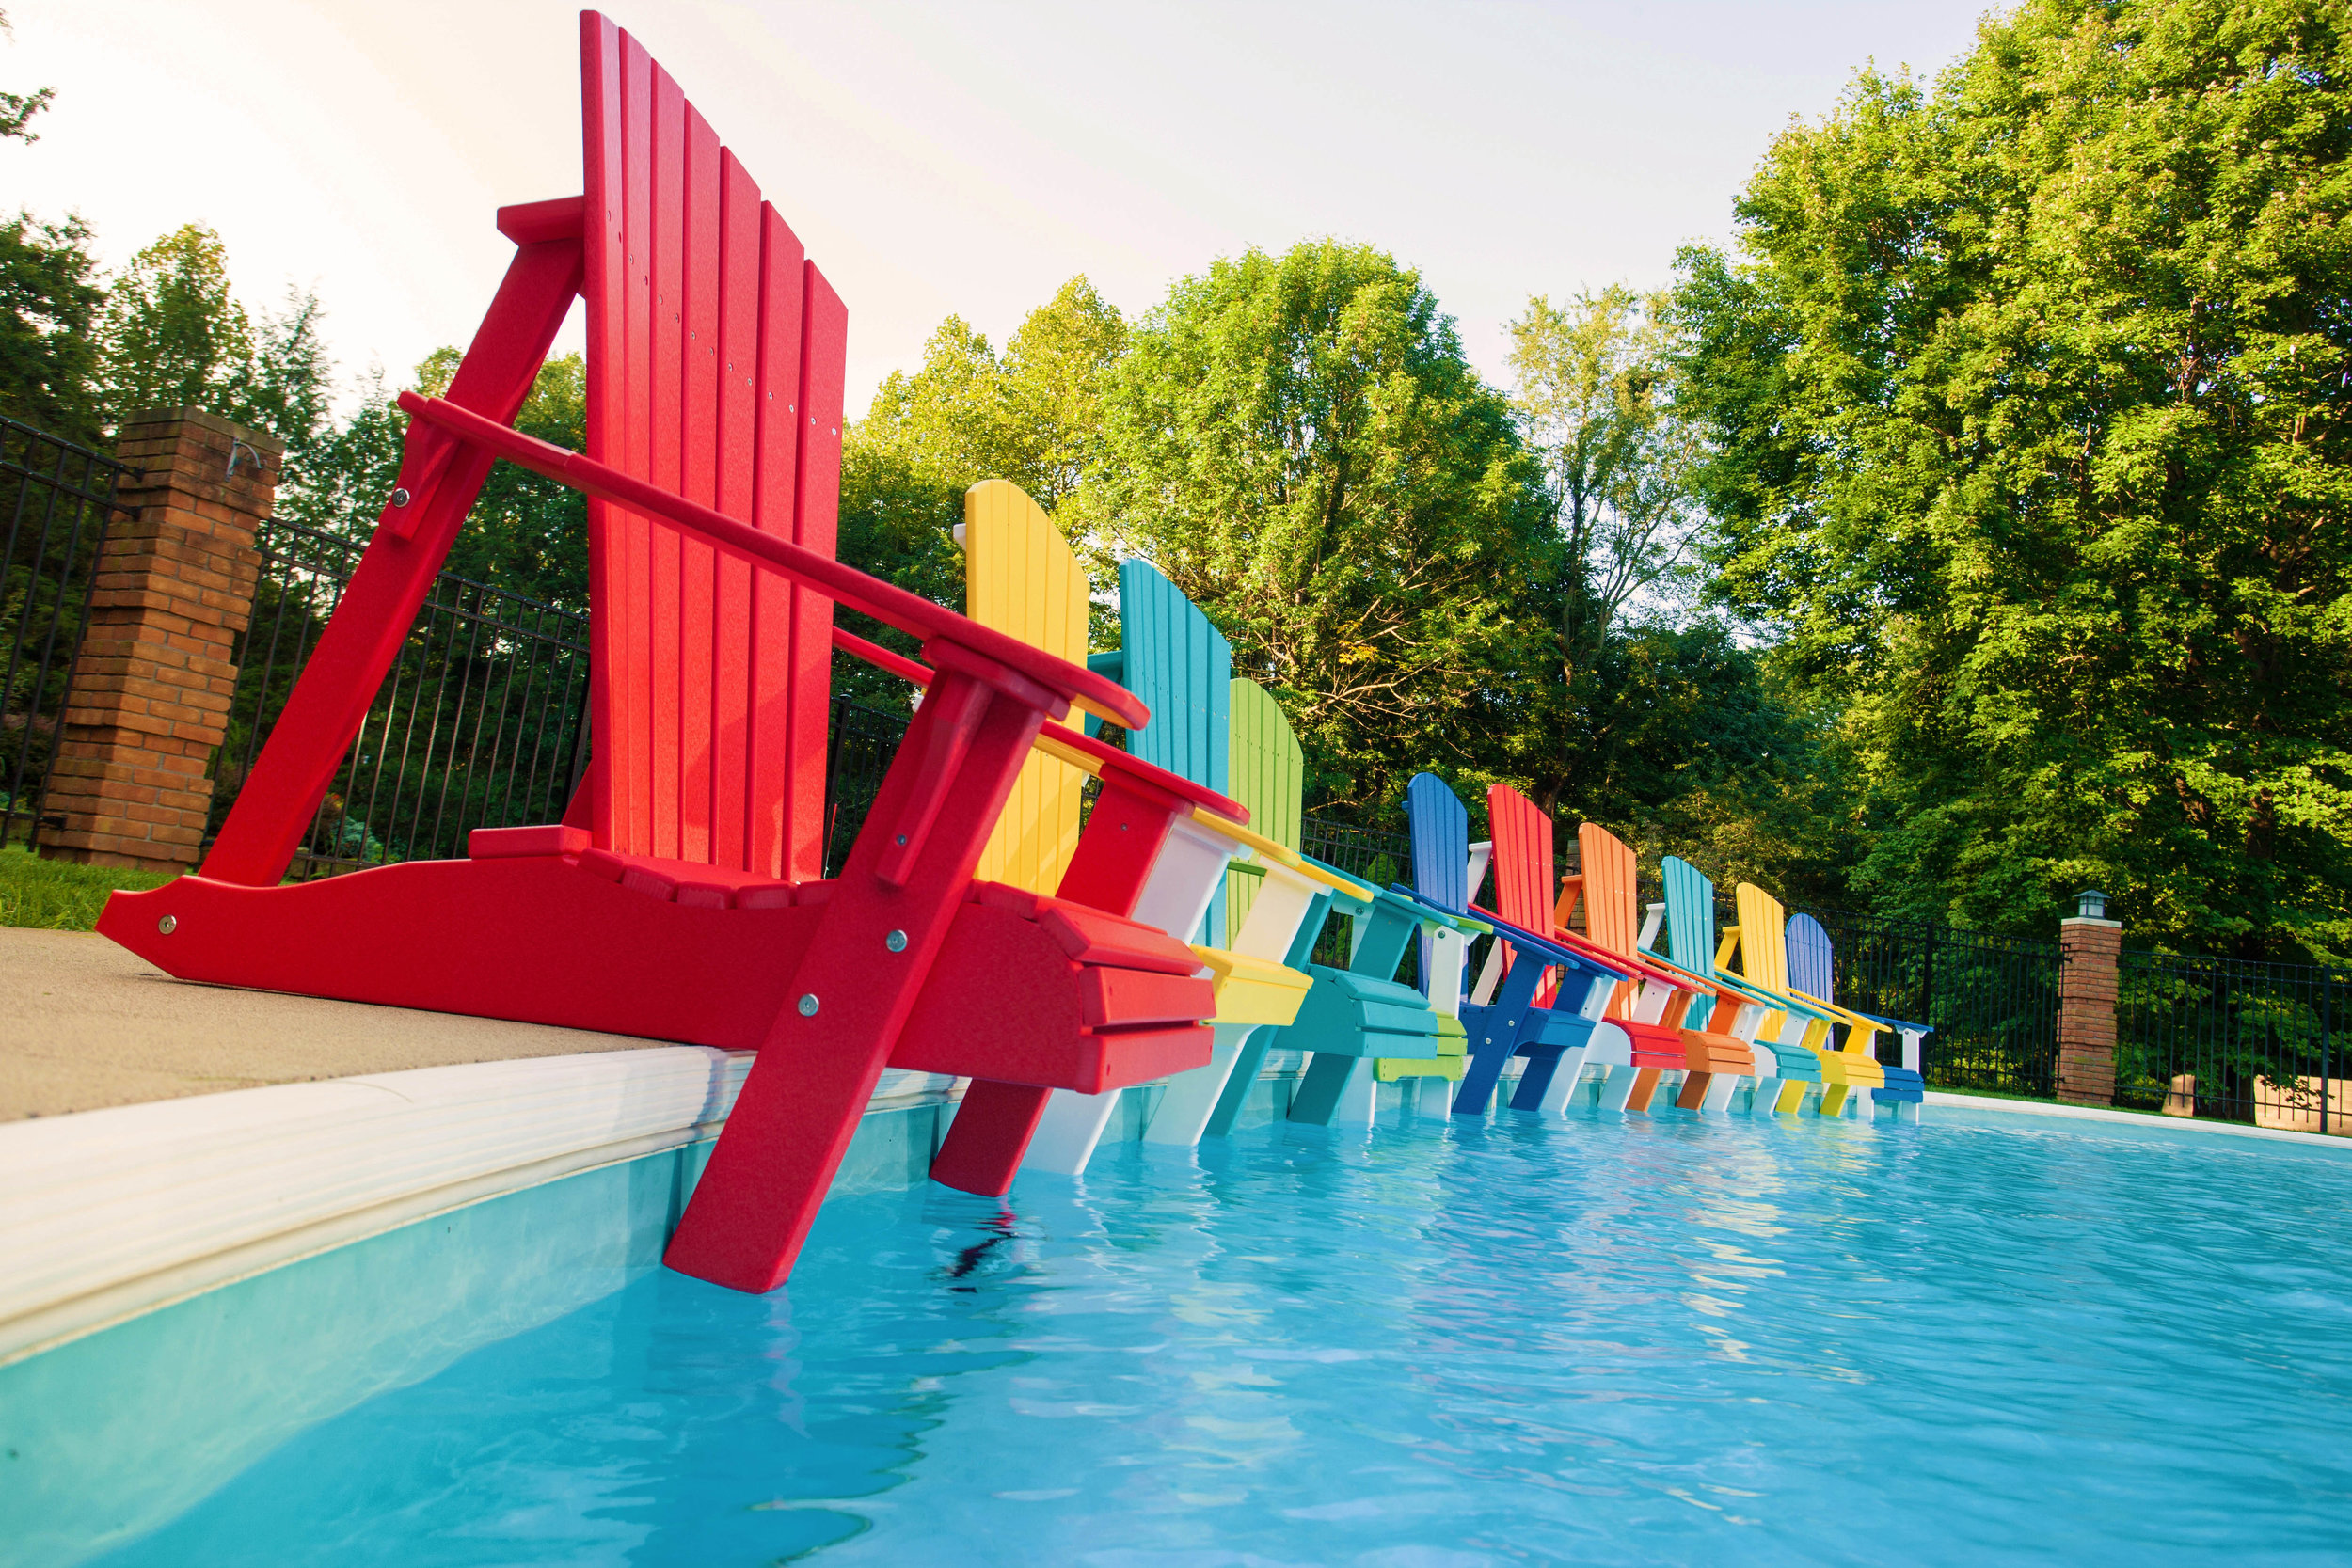 Deck Chairs Beside Pool.jpg